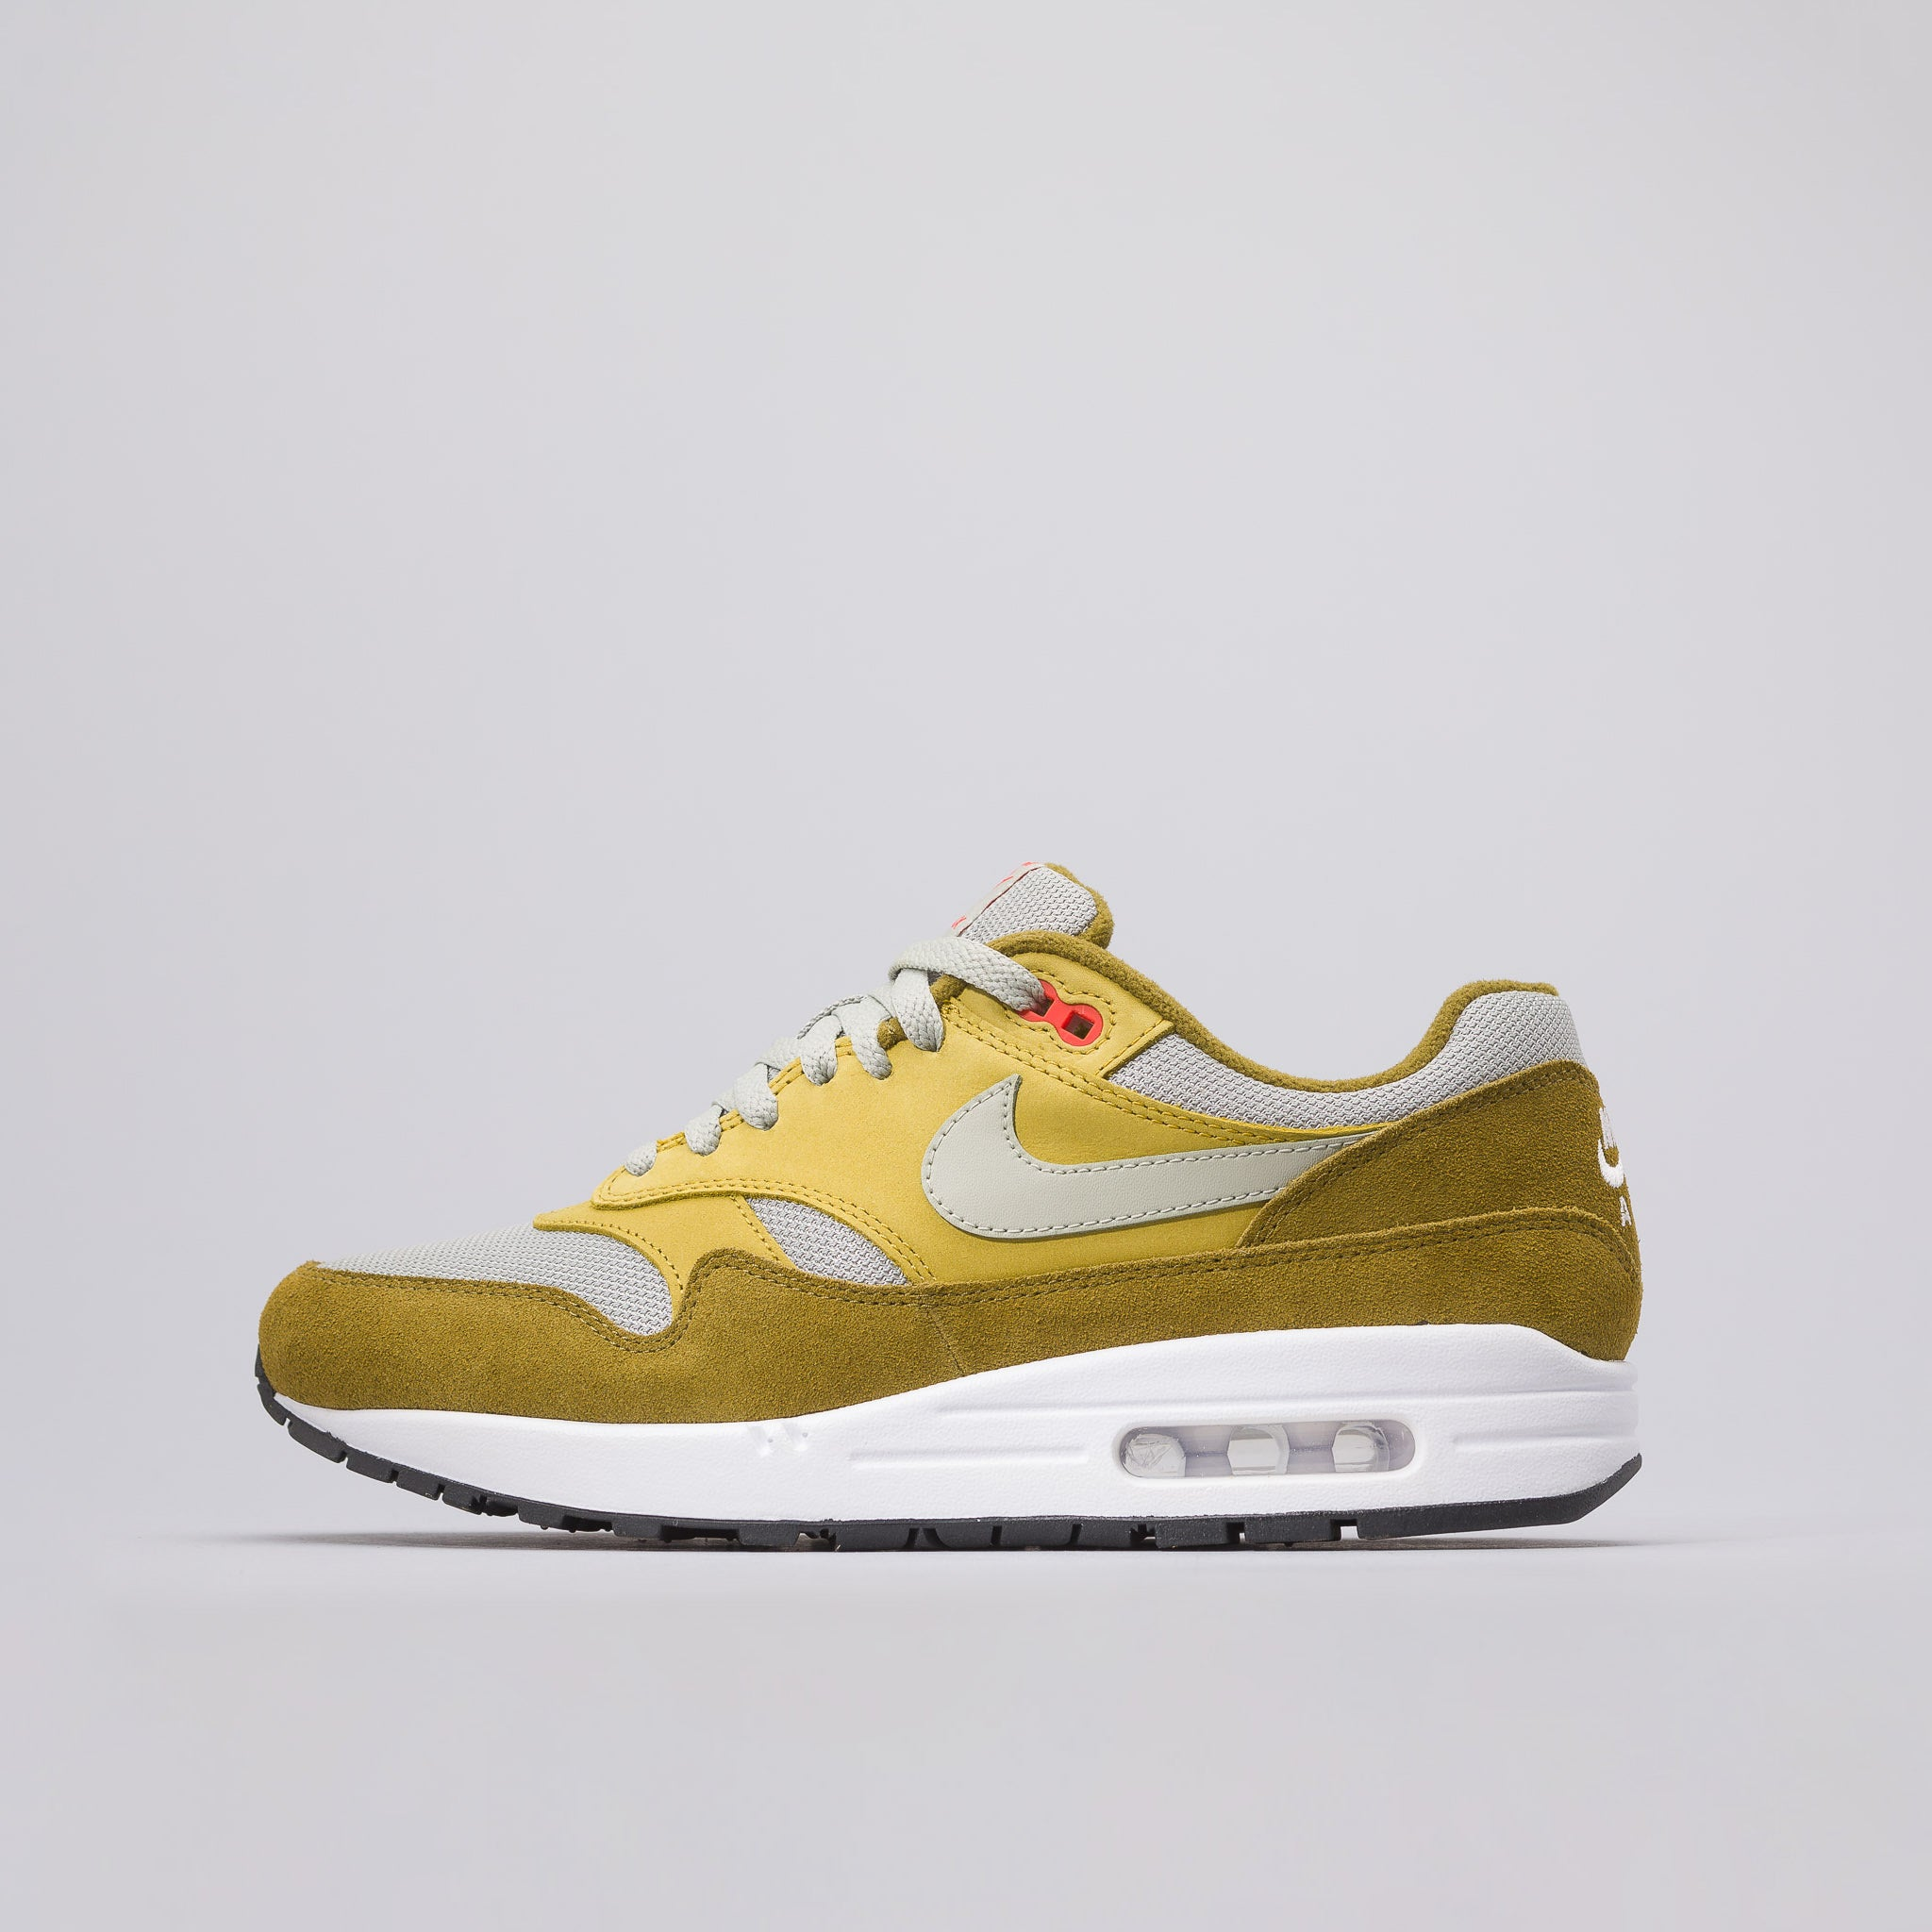 NIKE ATMOS AIR MAX 1 PREMIUM RETRO GREEN CURRY